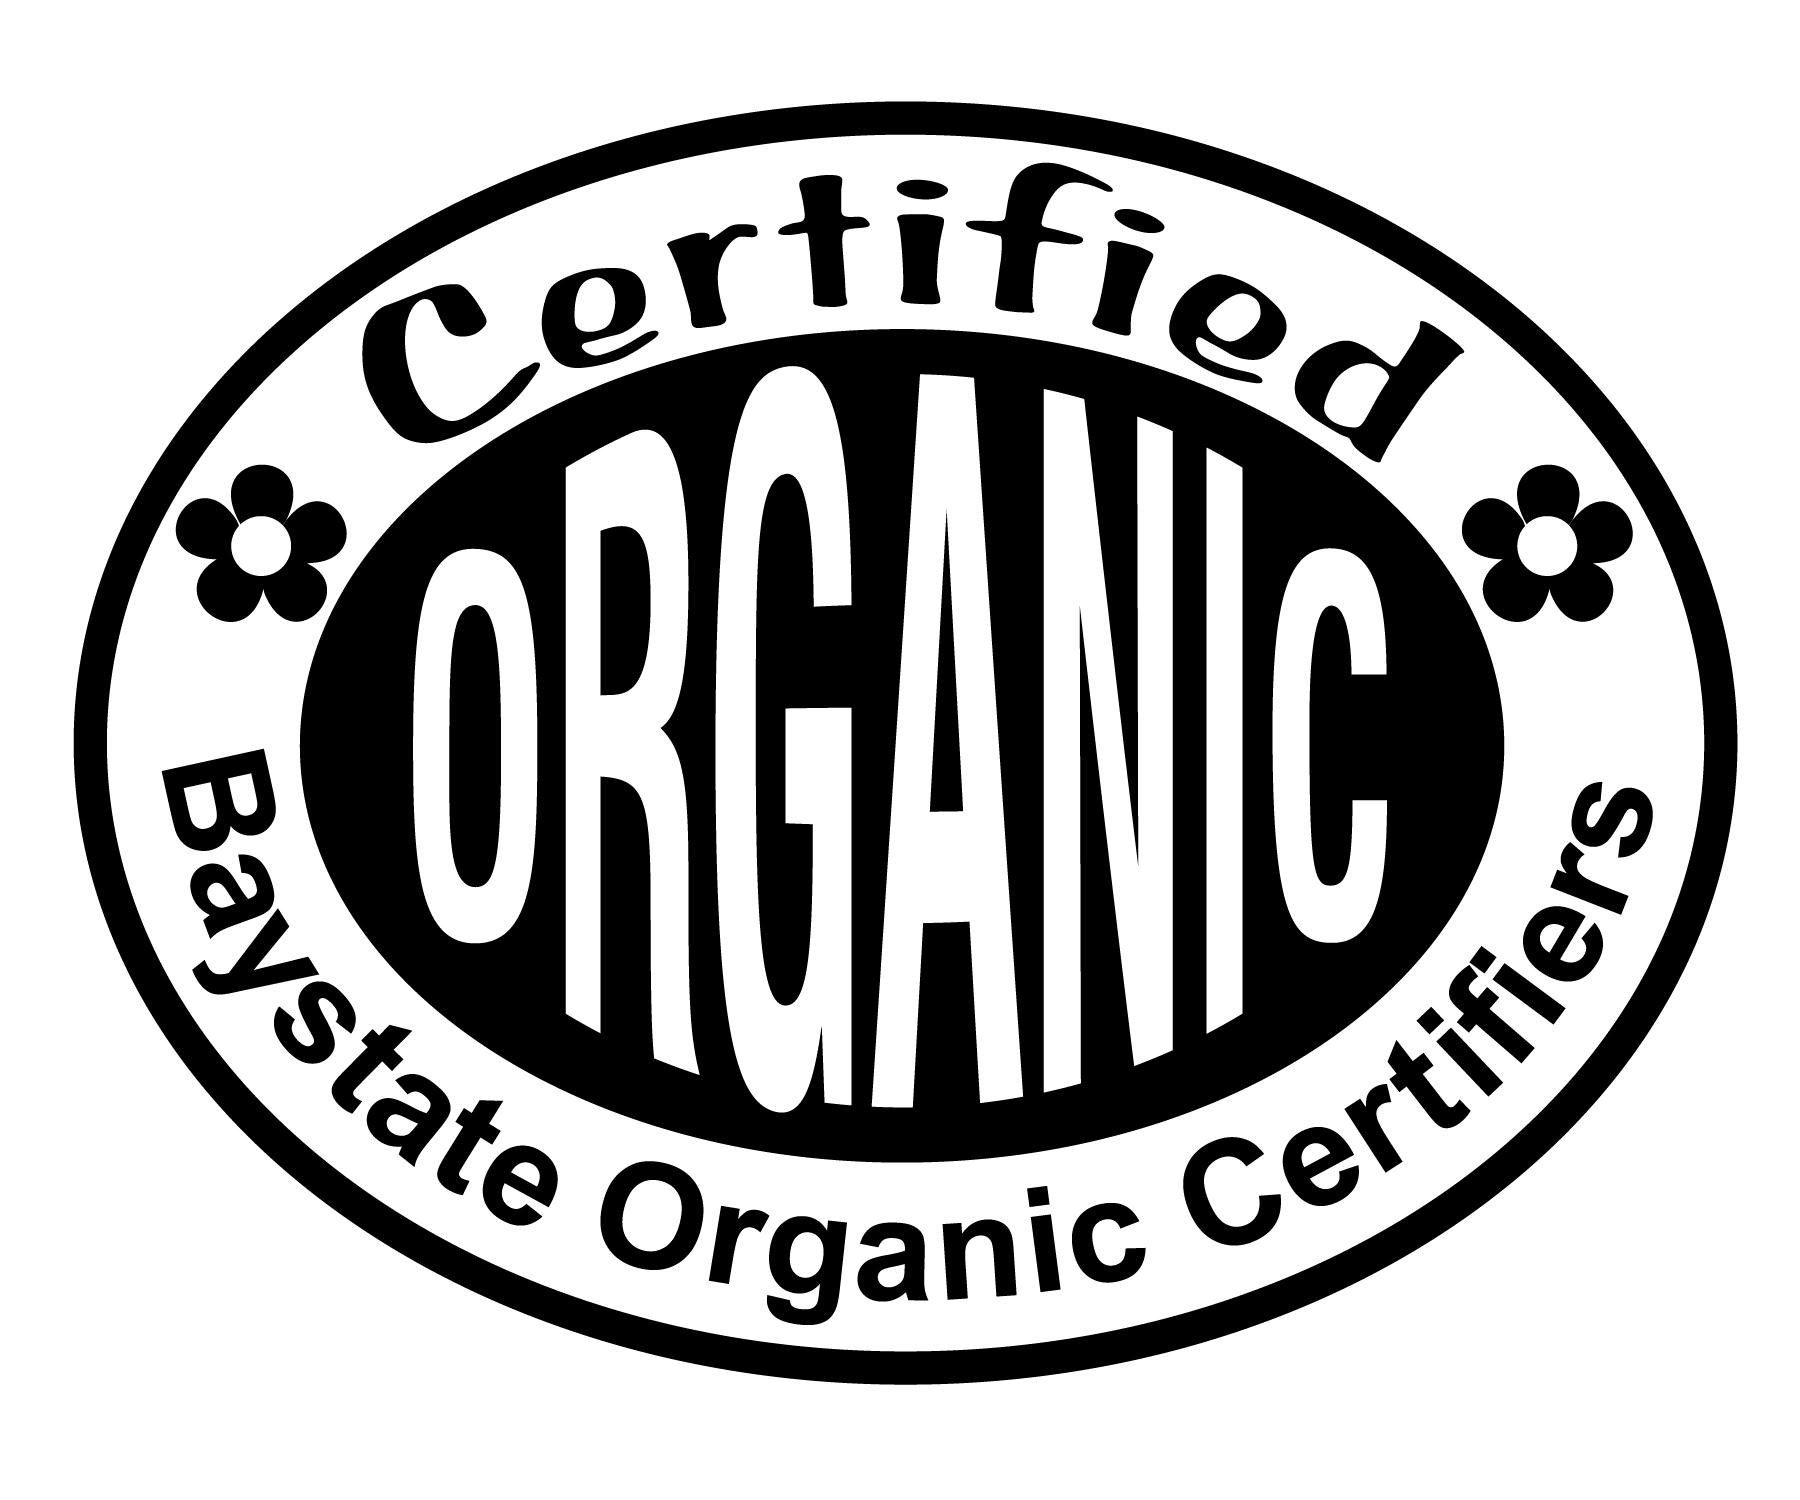 Organic Certification The Walden Woods Project